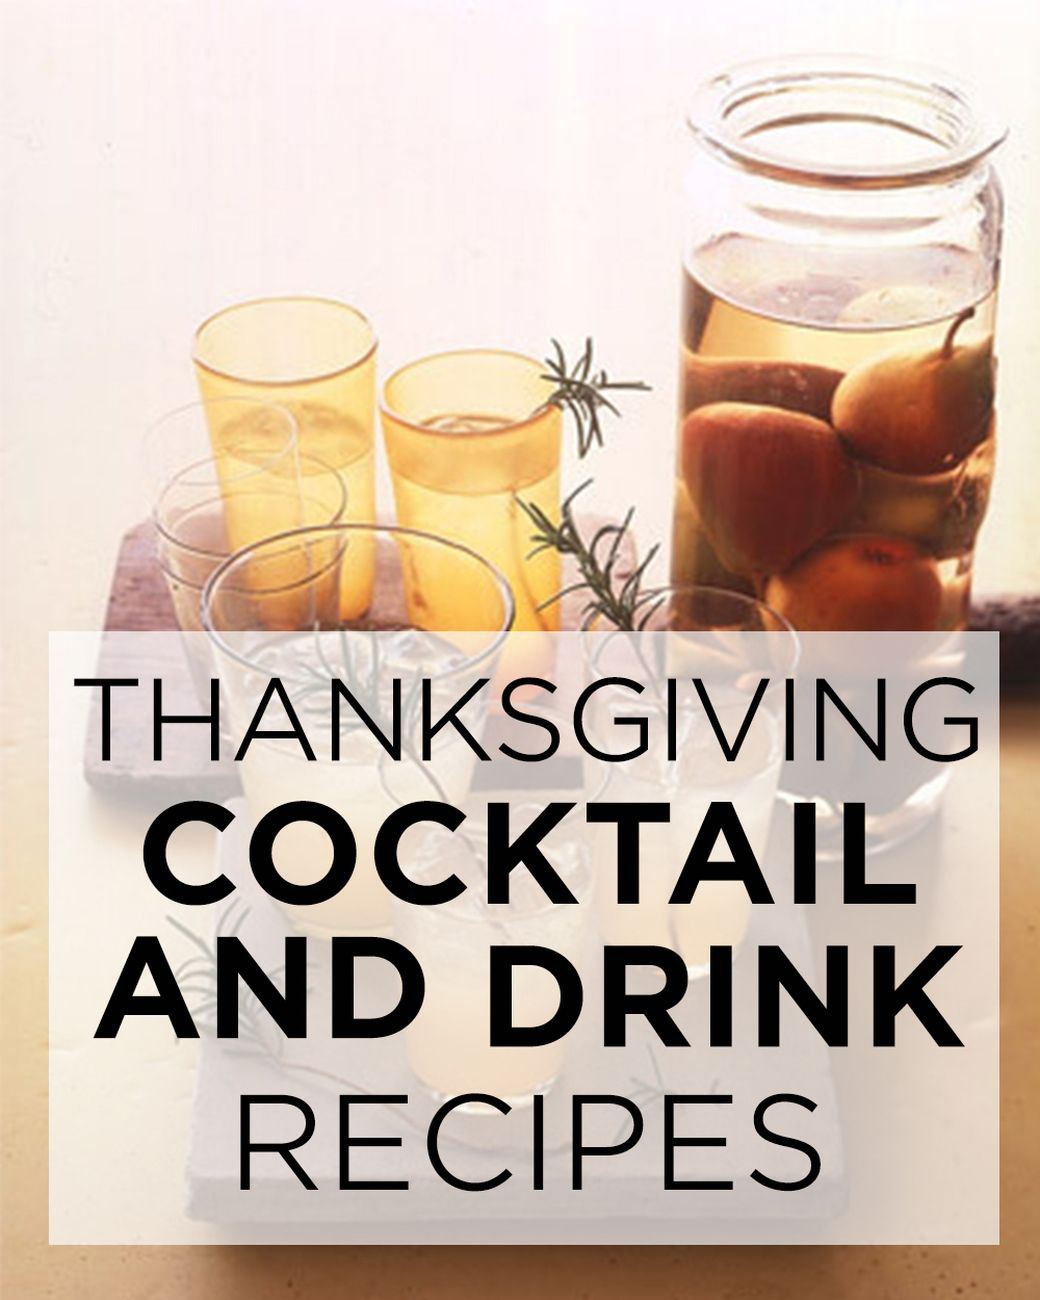 Toast Thanksgiving With These Cocktail And Drink Recipes